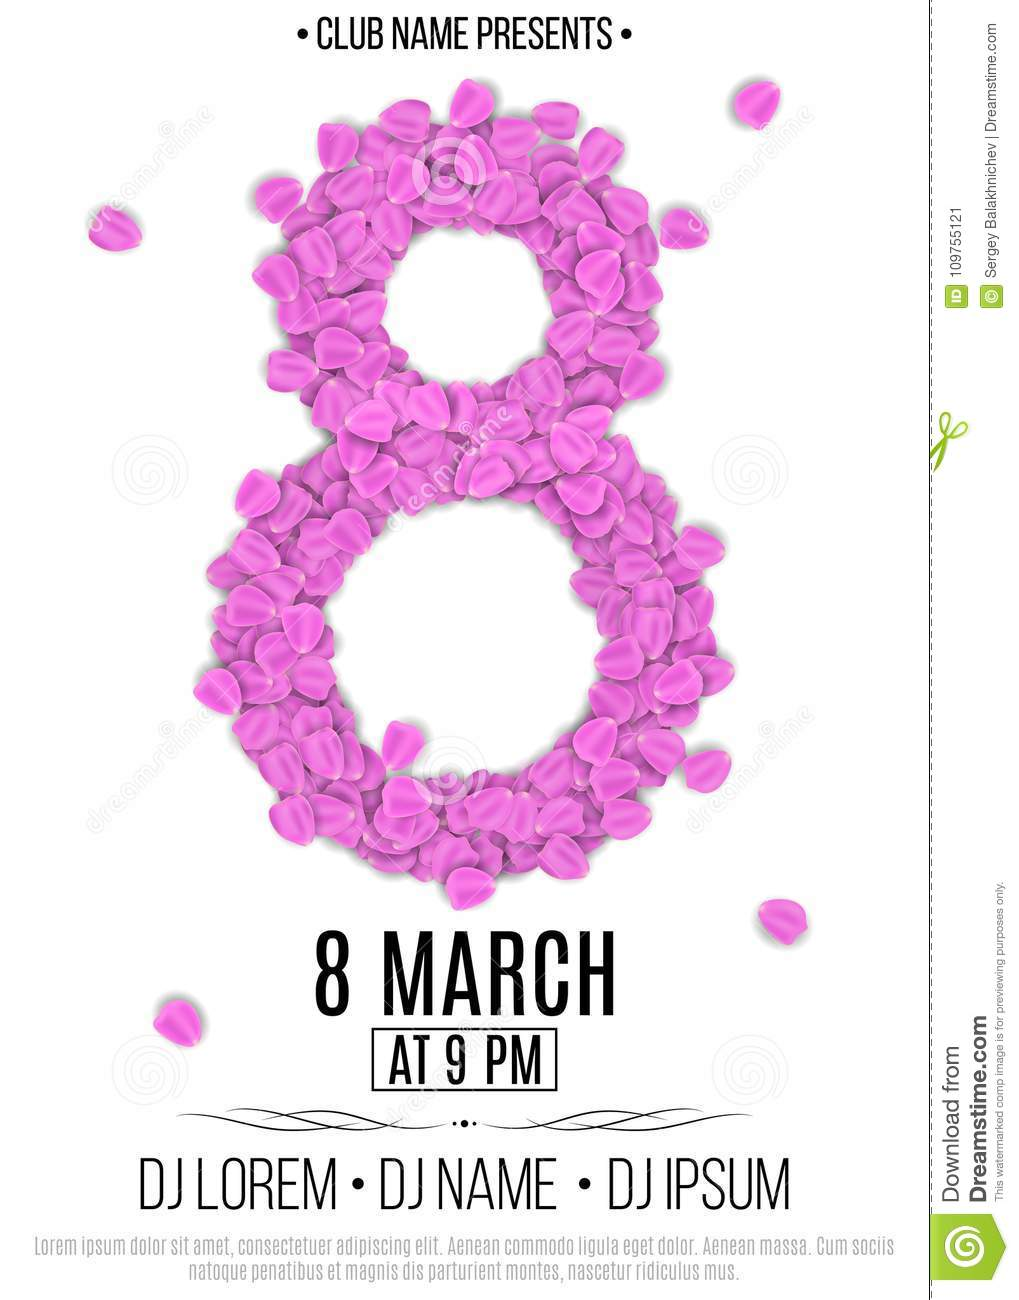 template for party on march 8 invitation card to the night club